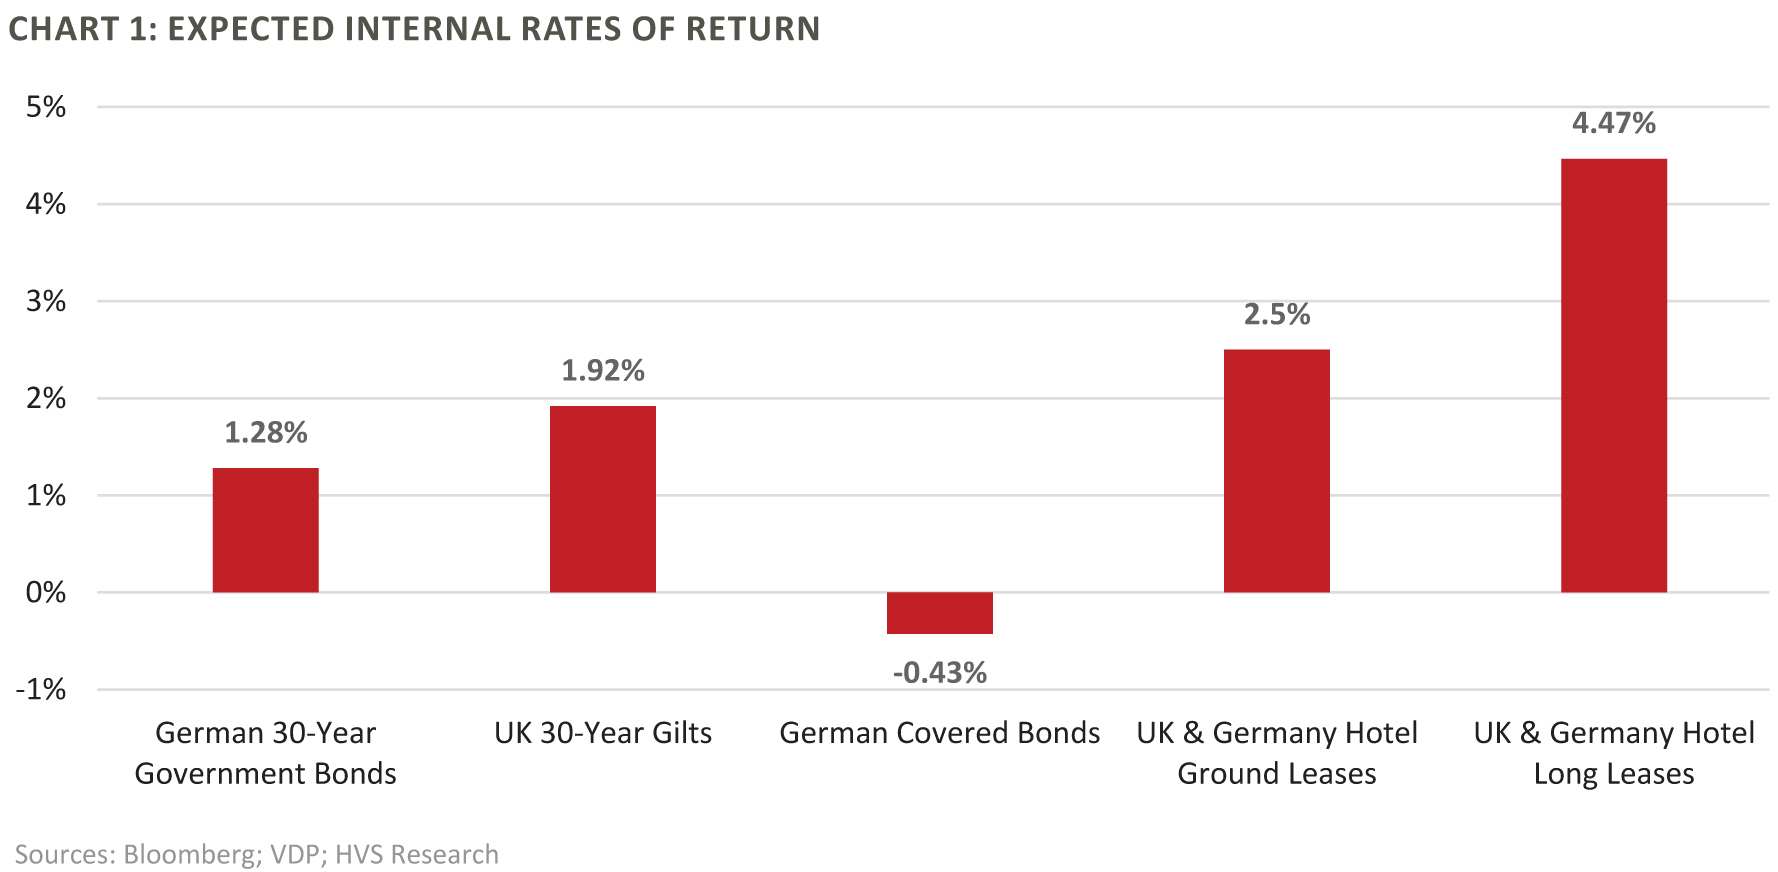 Expected Internal Rates of Return